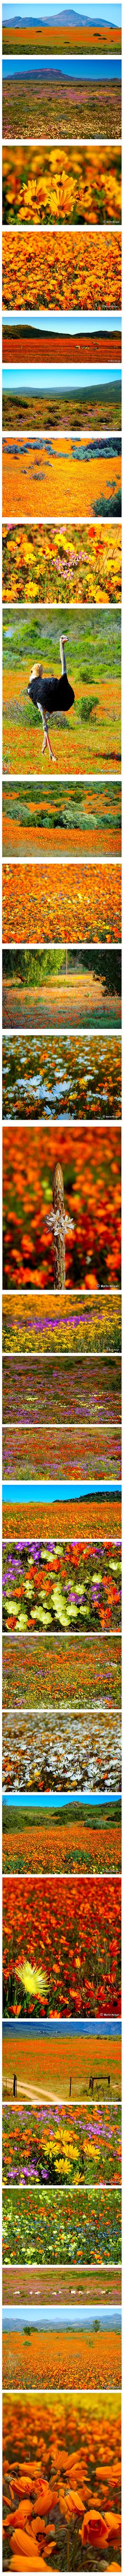 Namaqualand Daisies extend along South Africa's western coast for nearly 1 000 kilometres, for only a short time every year. Photographs: Martin Heigan.